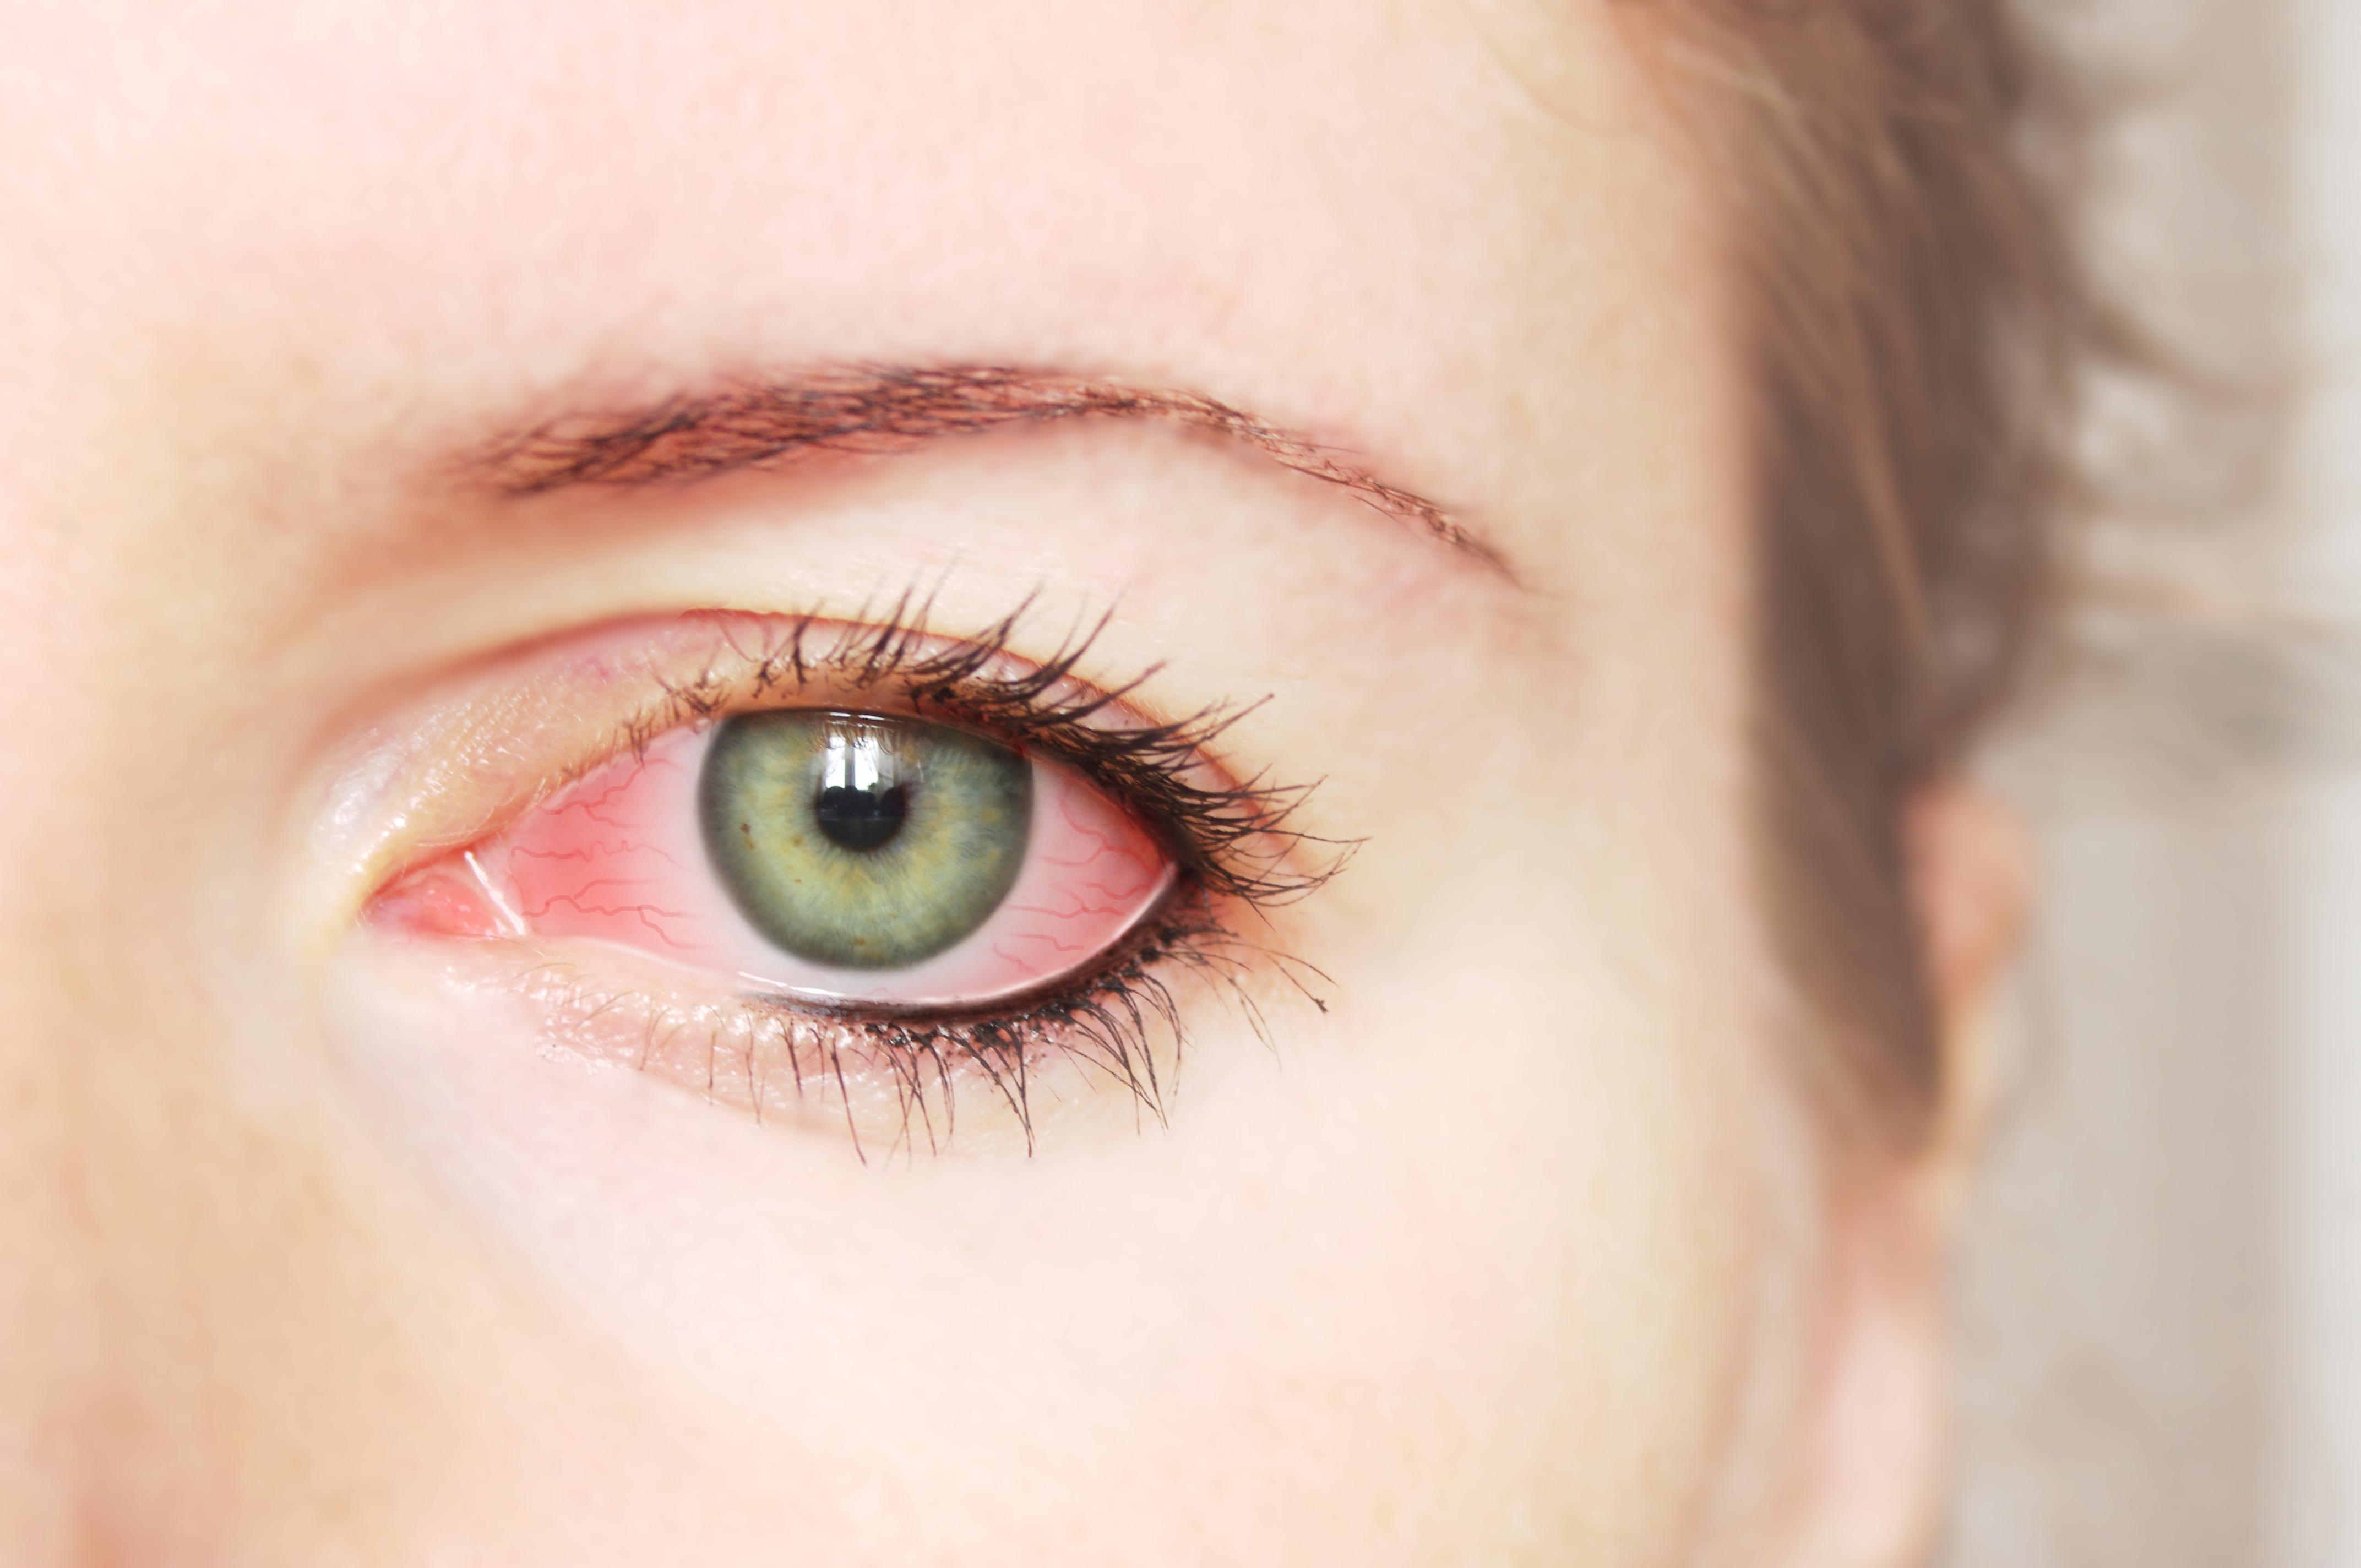 Feels Like Something is in the Eye? Here's What You Need to Know